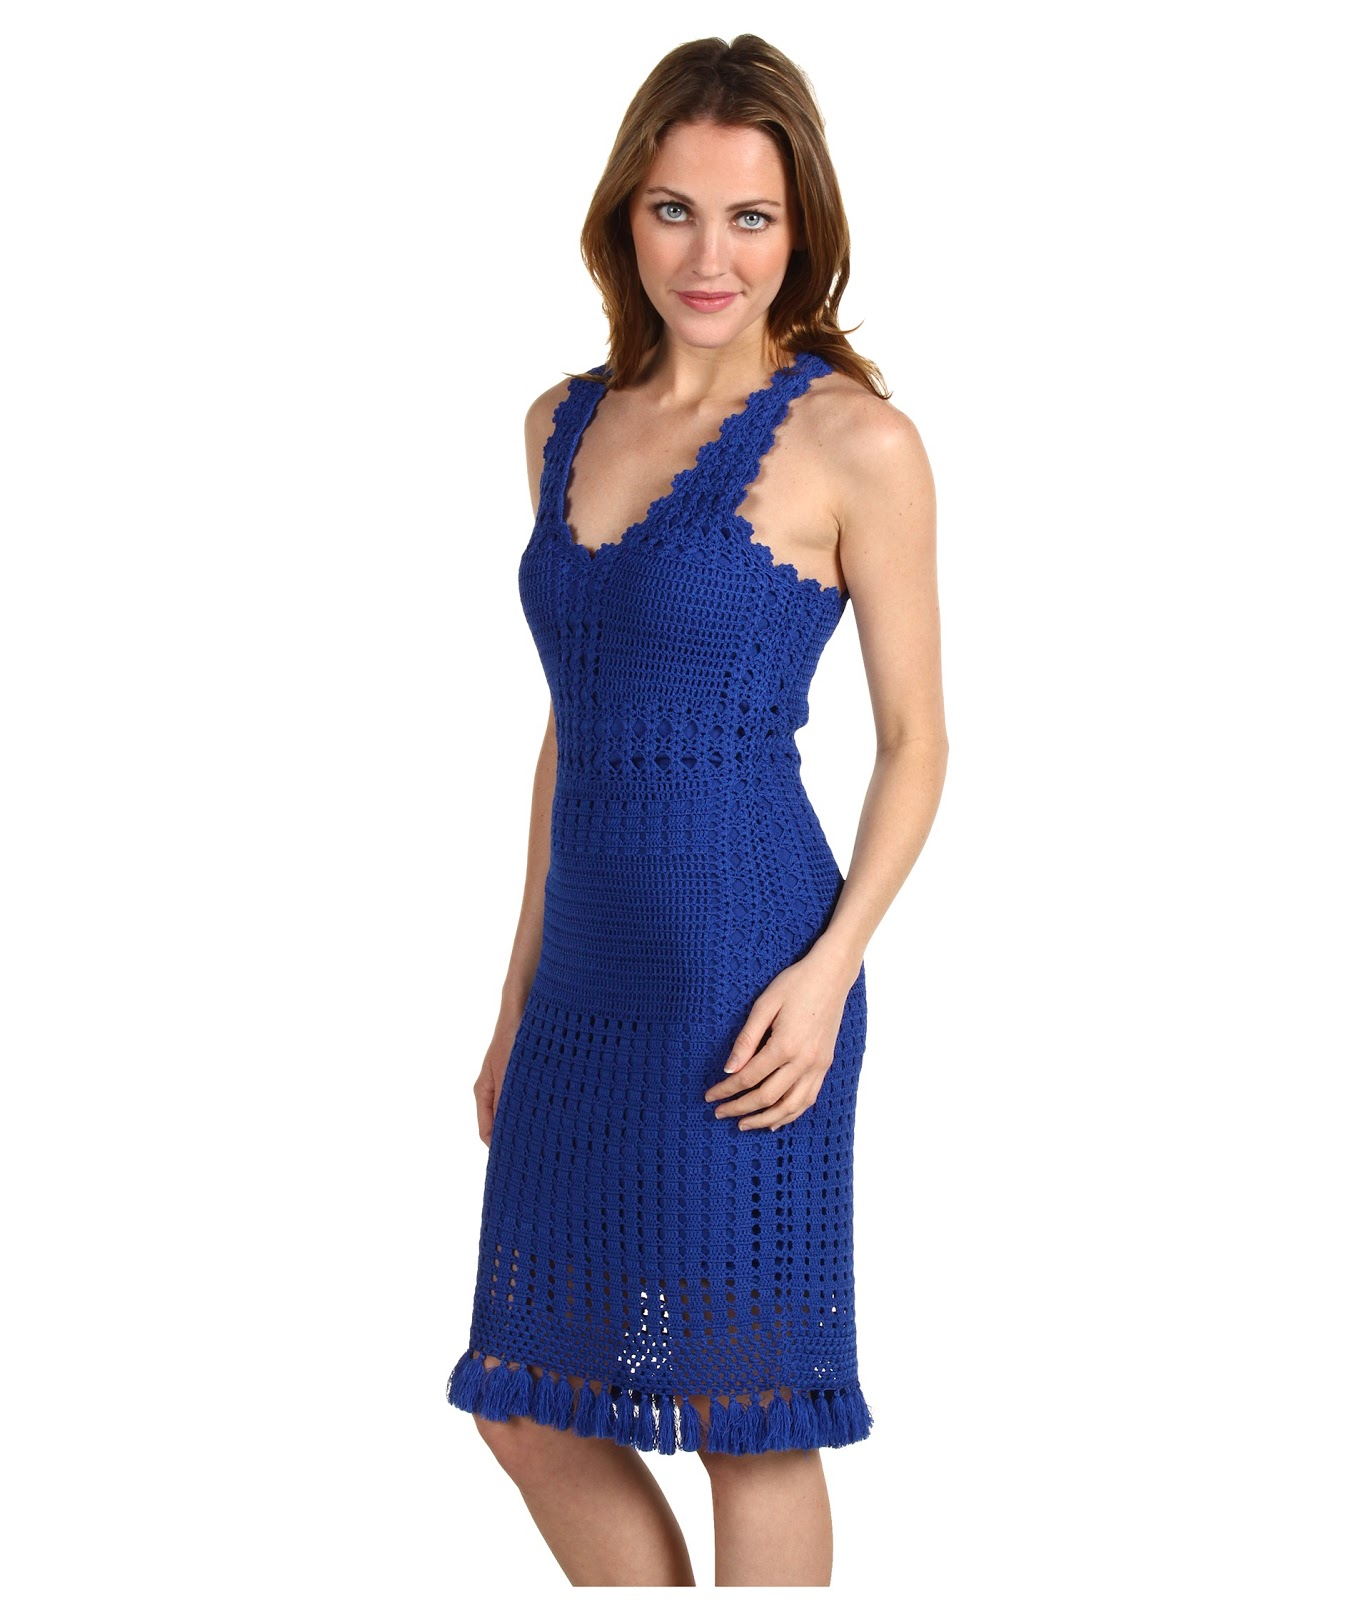 crinochet deep blue dress